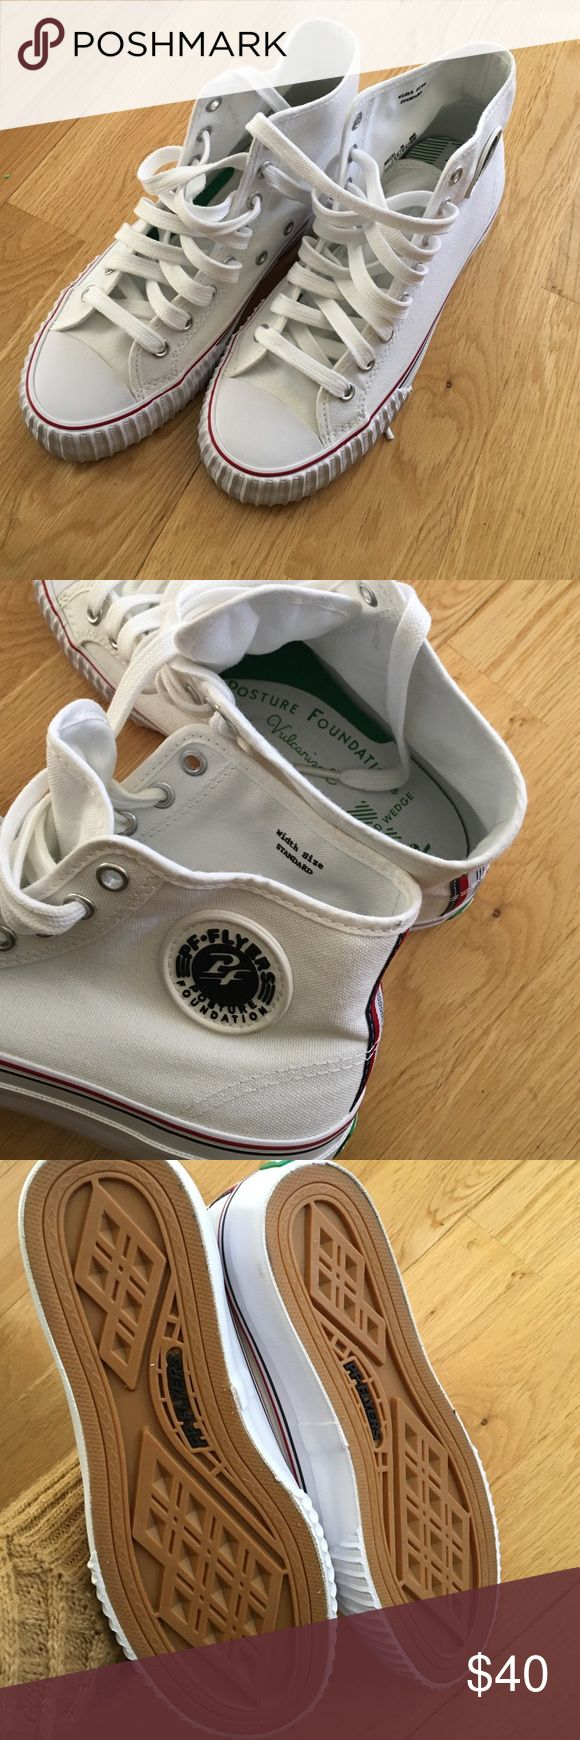 PF flyers Brand new / no box / width size standard pf flyers Shoes Sneakers